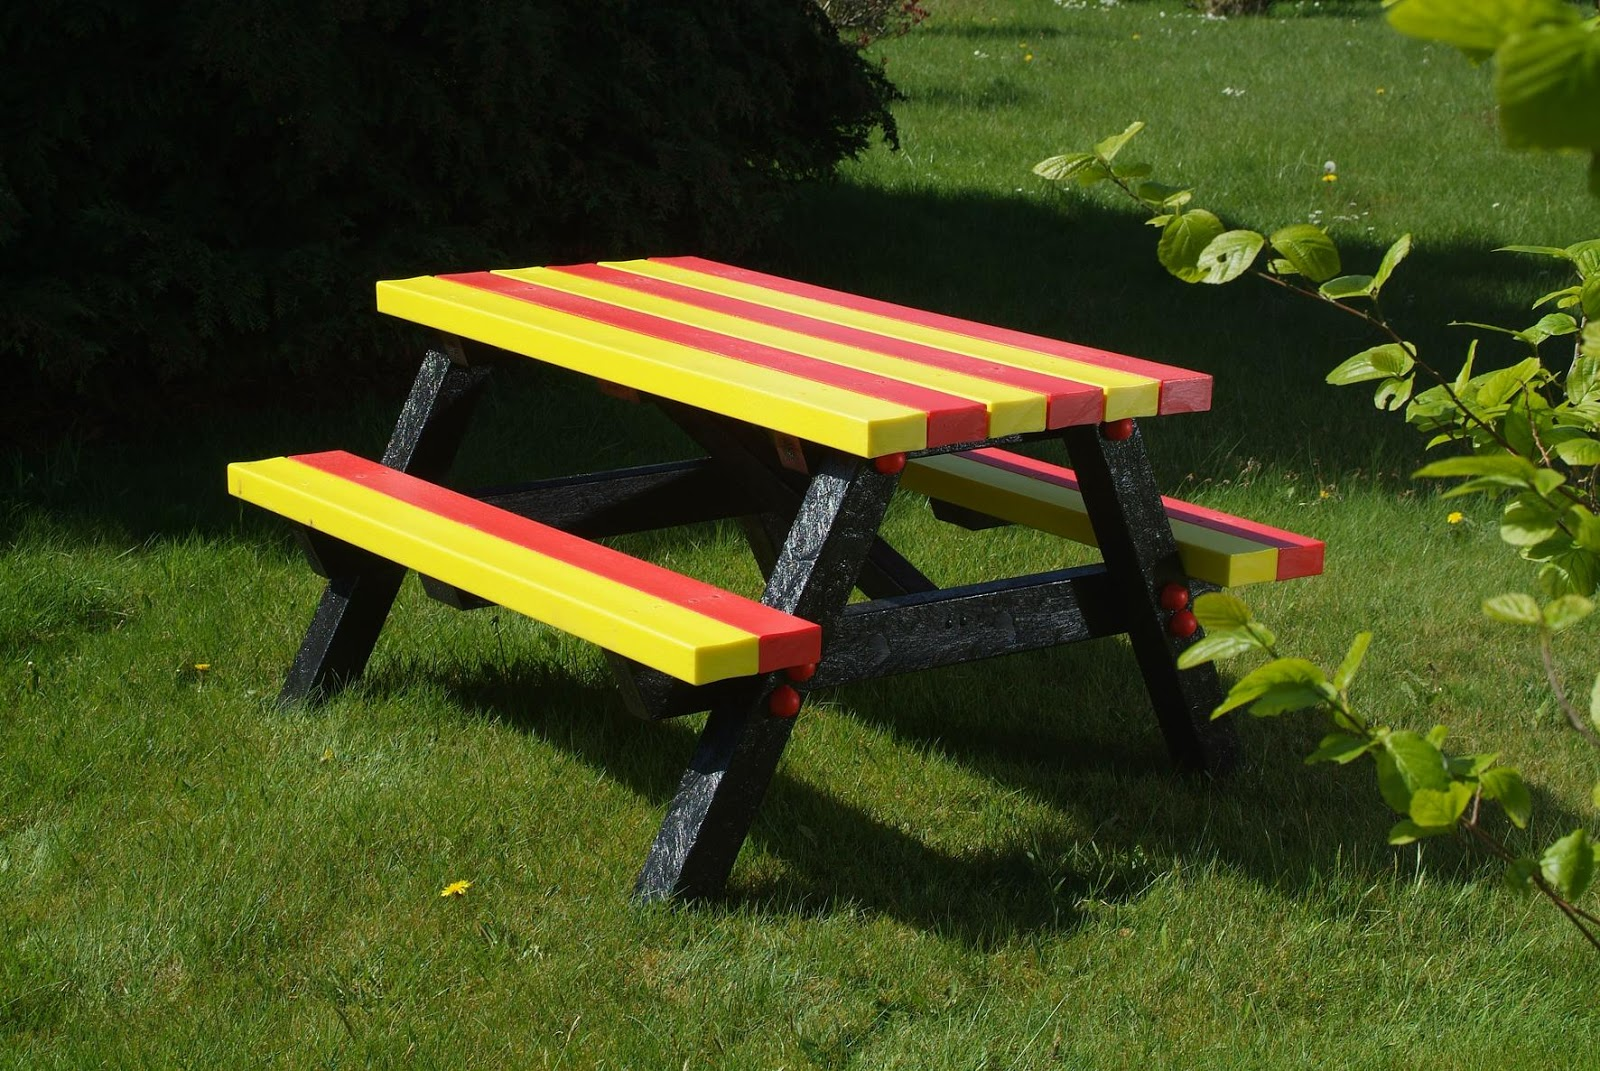 plans for a picnic table | Online Woodworking Plans